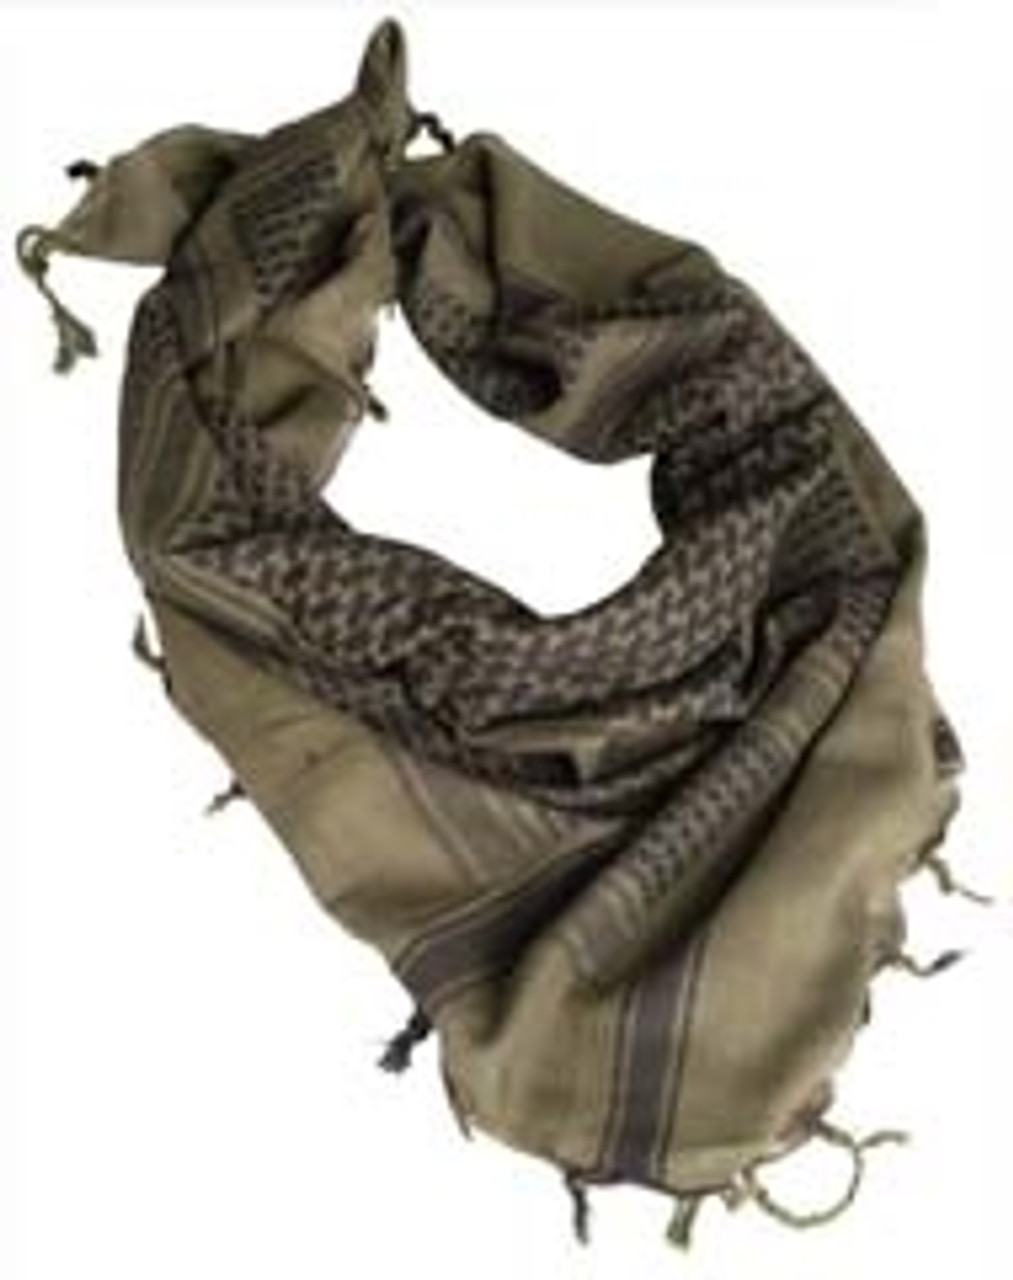 MIL-TEC SHEMAGH DESERT SCARF from Hessen Antique